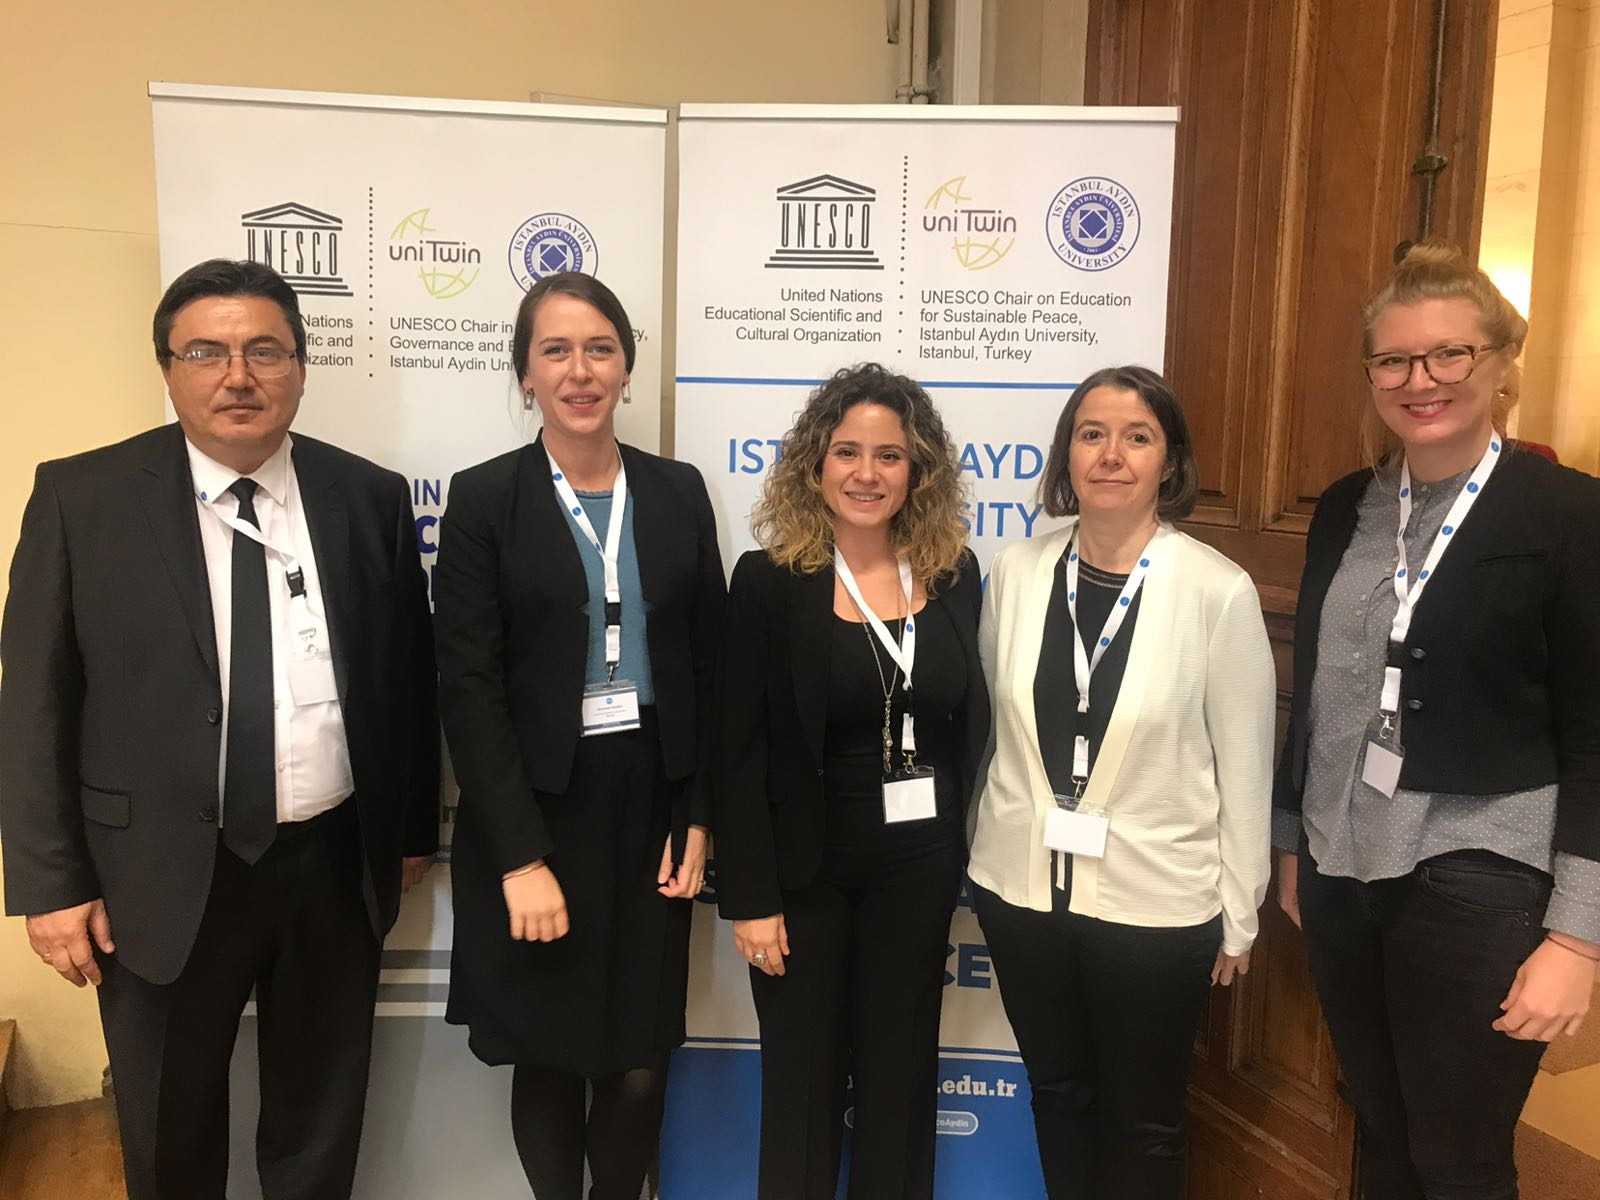 Refugee Education Sharing Experiences, 31 October 2017